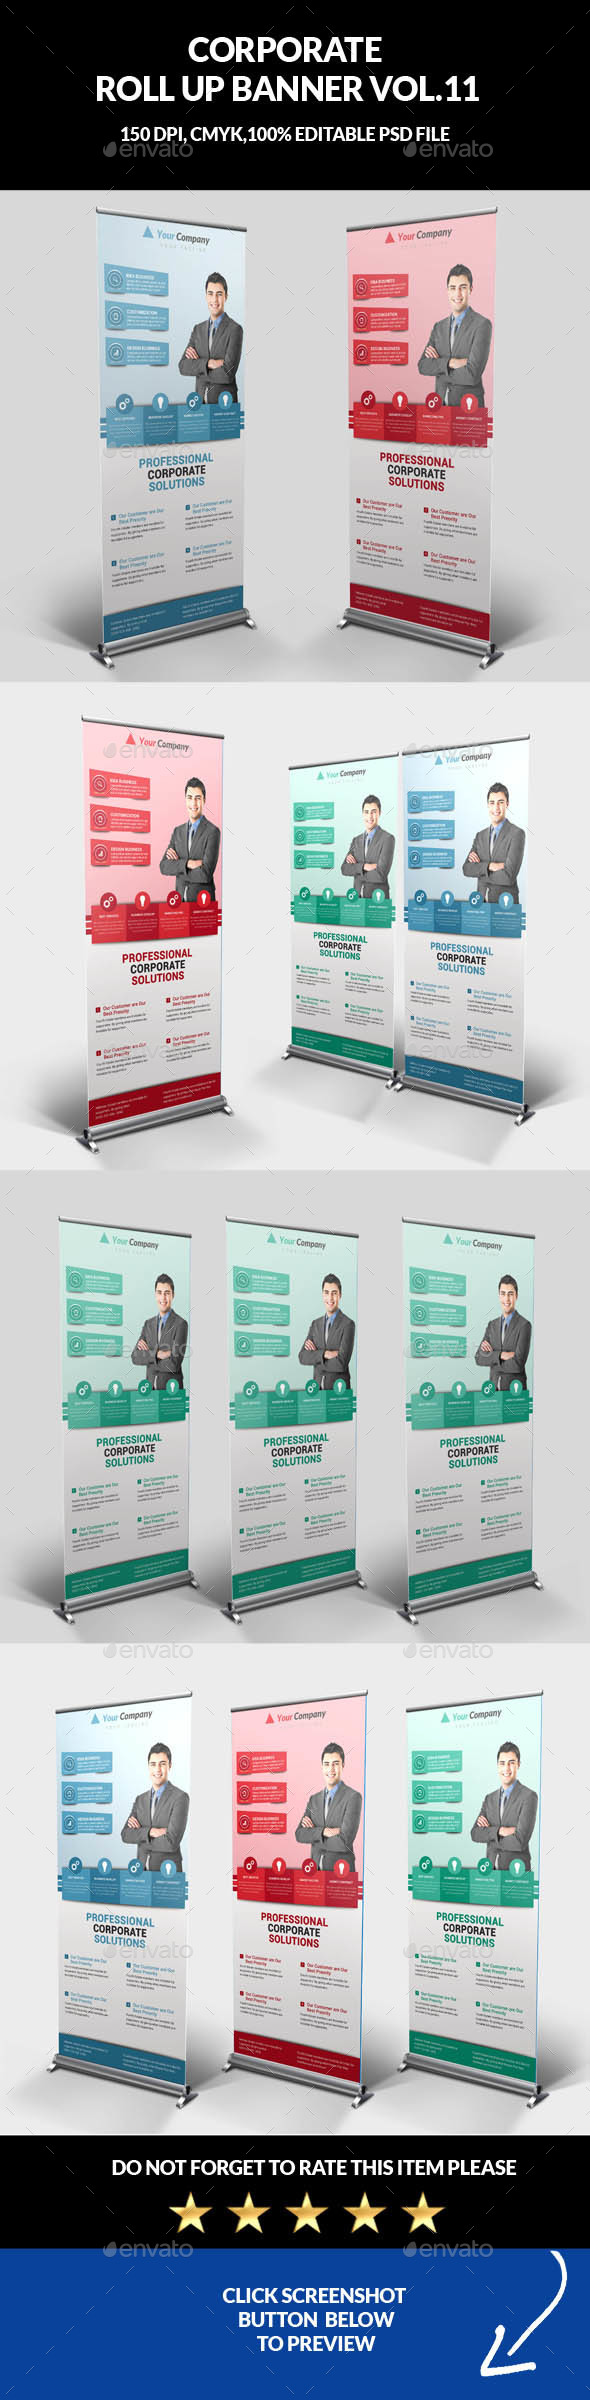 Corporate Business Roll Up Banner Vol.11 - Signage Print Templates